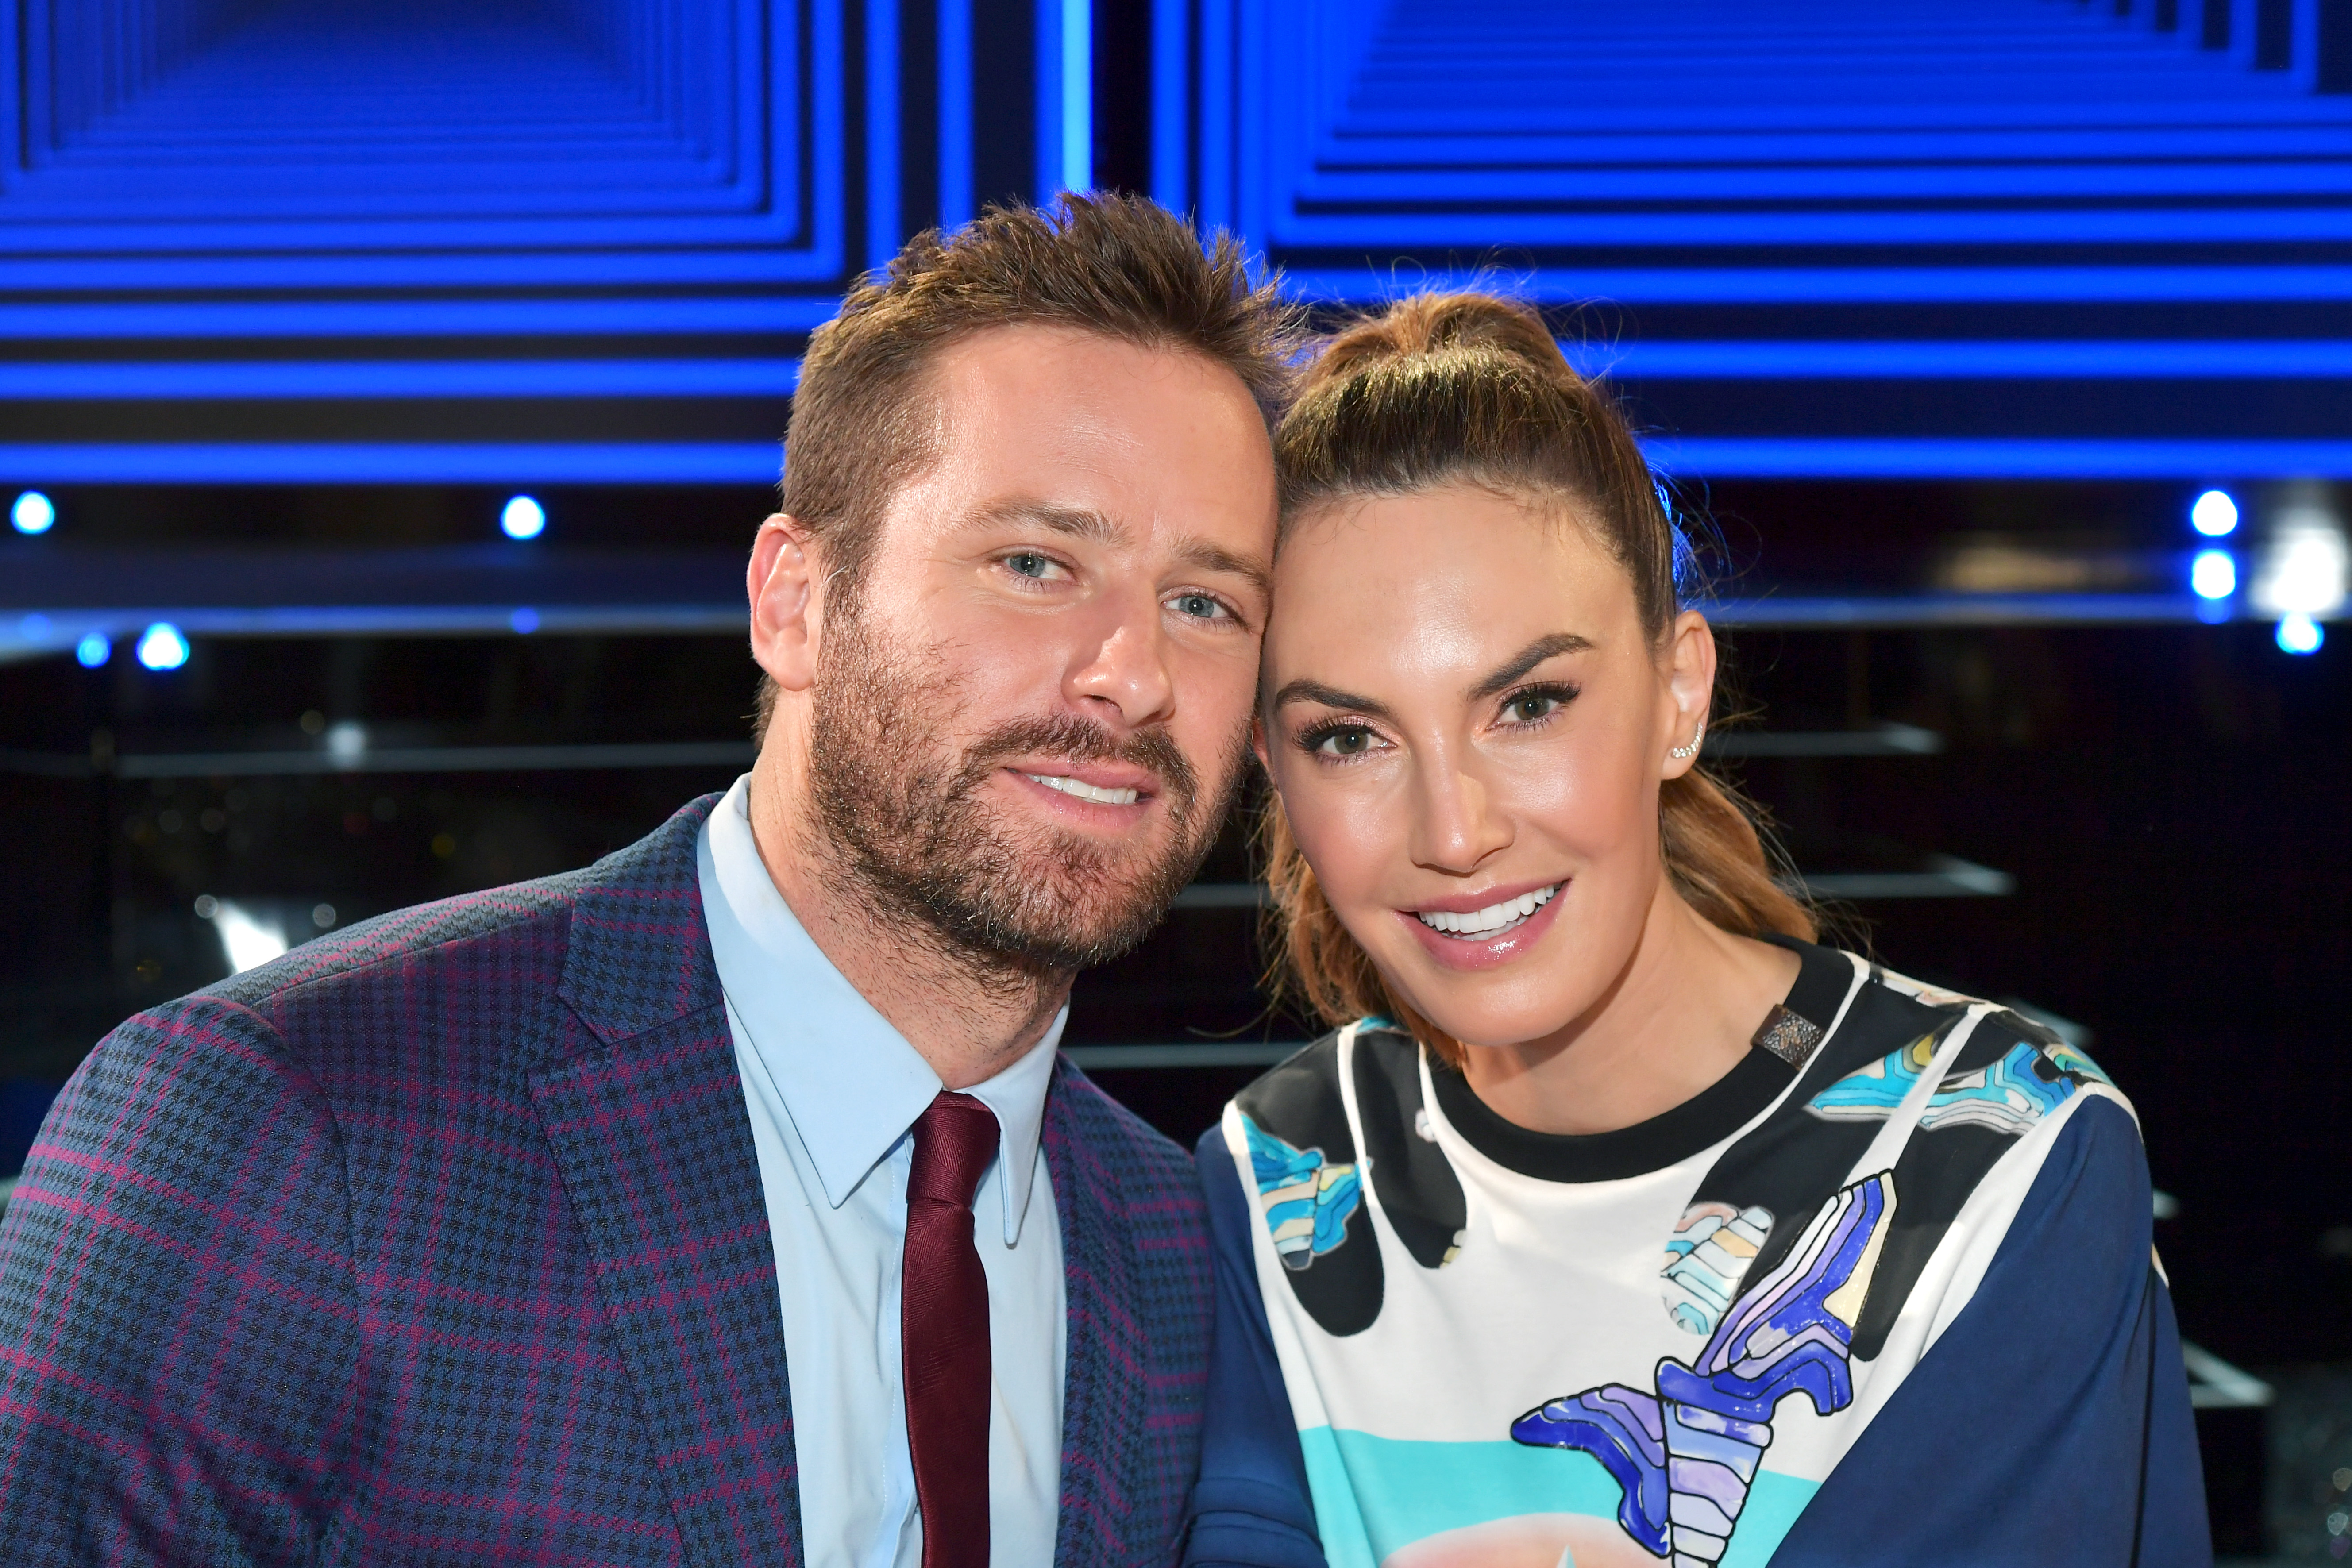 Armie Hammer and Elizabeth Chambers pose during the 2019 Film Independent Spirit Awards on February 23, 2019 in Santa Monica, California. (Photo by Amy Sussman/Getty Images)